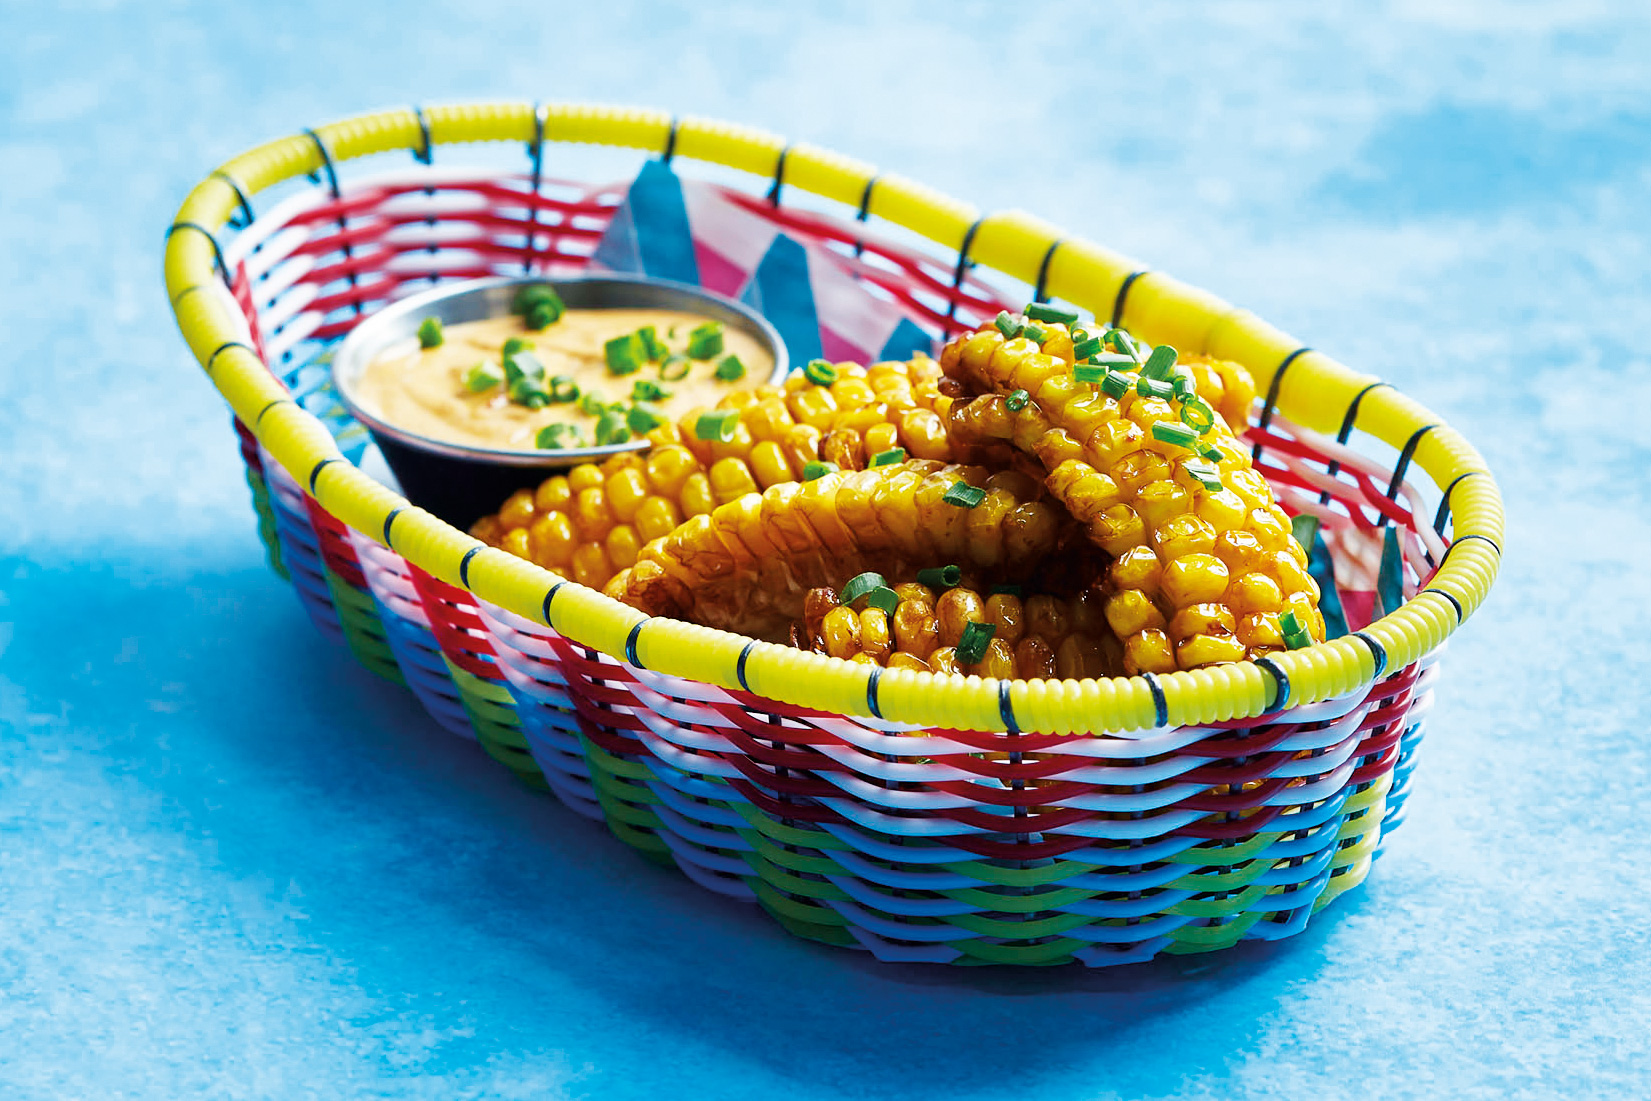 Corn ribs served in a colourful basket with a chipotle mayo on the side